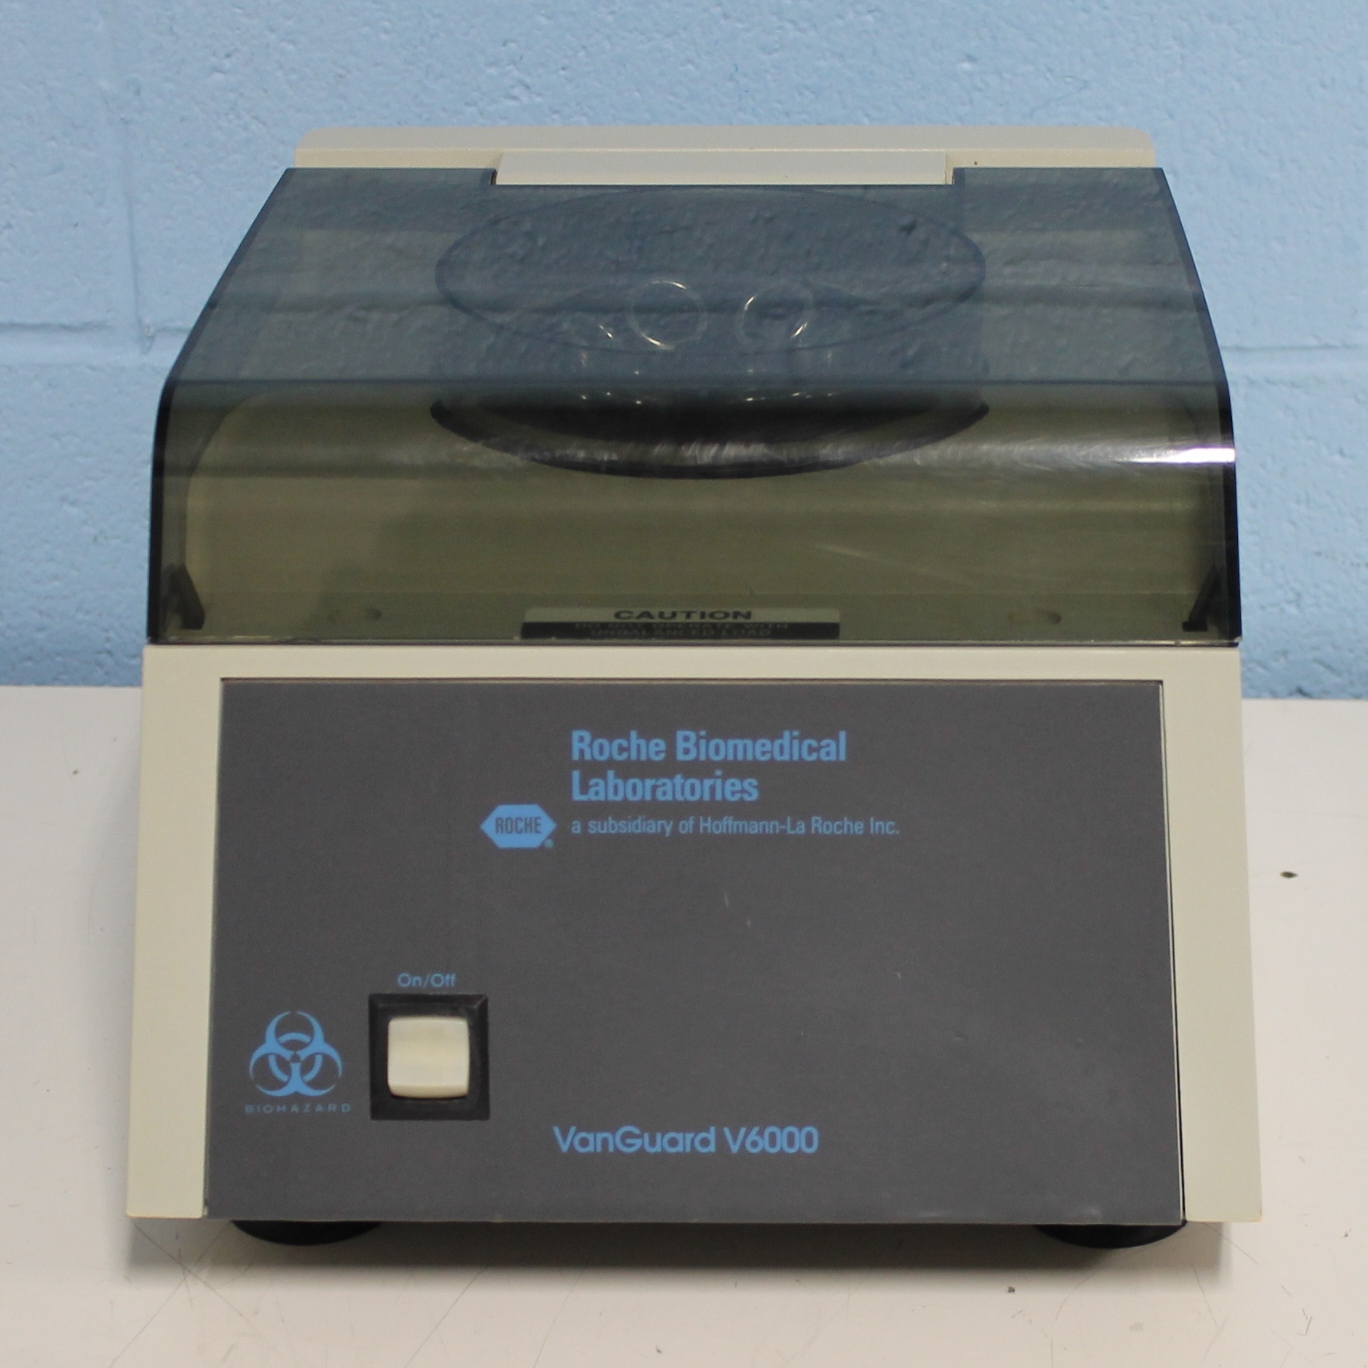 Roche Applied Science Vanguard V6000 Benchtop Centrifuge Image